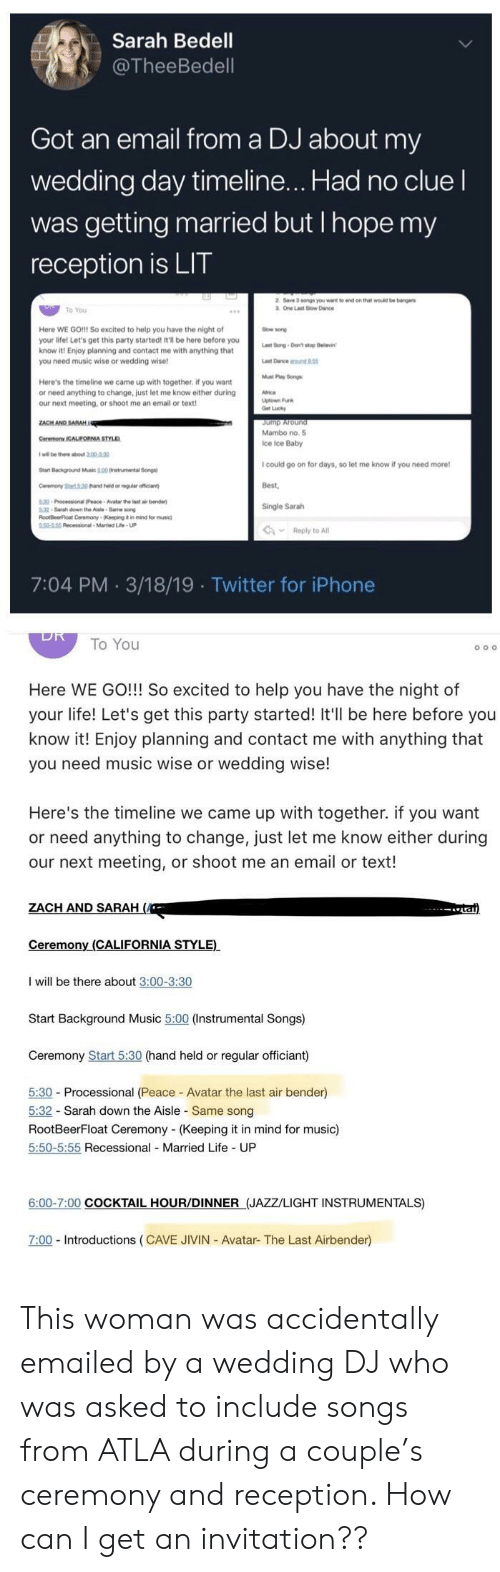 Iphone, Jump Around, and Life: Sarah Bedell  @TheeBedell  Got an email from a DJ about my  wedding day timeline... Had no cluel  was getting married but Ihope my  reception is LIT  2 Save 3 songs you wart to end on that wod be barnge  3. One Last Sow Dance  To You  Here WE GO!!! So excited to help you have the night of  your life! Let's get this party started! It'l be here before you  know it! Enjoy planning and contact me with anything that  you need music wise or wedding wise  ow sond  ast Song-Don't stop Deevin  Muat Pay Bngs  Here's the timeline we came up with together, if you want  or need anything to change, just let me know either during  our next meeting, or shoot me an email or text  ZACH AND SARAH  Jump Around  Mambo no. 5  Ice ice Baby  CeremonyY ICALIFORNIA STYLD  I will be there about 2.00-2.30  I could go on for days, so let me know if you need more  Best,  Single Sarah  Start Background Mnic 500 0nstrumental Song  Ceremony Sart 0 hand held or eguiar officiant  9-Processional(Peace-Awatar the last air bande  32-Sarsh down the Aisle-Same song  RloofBeerFloat Ceremony-(Keeping it in mind for music)  50-5:55 Recessional-Married Lfe-UP  Reply to All  7:04 PM 3/18/19 Twitter for iPhone  To You  Here WE GO!!! So excited to help you have the night of  your life! Let's get this party started! It'll be here before you  know it! Enjoy planning and contact me with anything that  you need music wise or wedding wise!  Here's the timeline we came up with together. if you want  or need anything to change, just let me know either during  our next meeting, or shoot me an email or text!  ZACH AND SARAH  Ceremony (CALIFORNIA STYLE)  I will be there about 3:00-3:30  Start Background Music 5:00 (Instrumental Songs)  Ceremony Start 5:30 (hand held or regular officiant)  5:30 - Processional (Peace- Avatar the last air bender)  5:32 Sarah down the Aisle Same song  RootBeerFloat Ceremony (Keeping it in mind for music)  5:50-5:55 Recessional Married Life UP  6:00-7:00 COCKTAIL HOUR/DINNER (JAZZ/LIGHT INSTRUMENTALS)  7:00 Introductions (CAVE JIVIN Avatar- The Last Airbender) This woman was accidentally emailed by a wedding DJ who was asked to include songs from ATLA during a couple's ceremony and reception. How can I get an invitation??